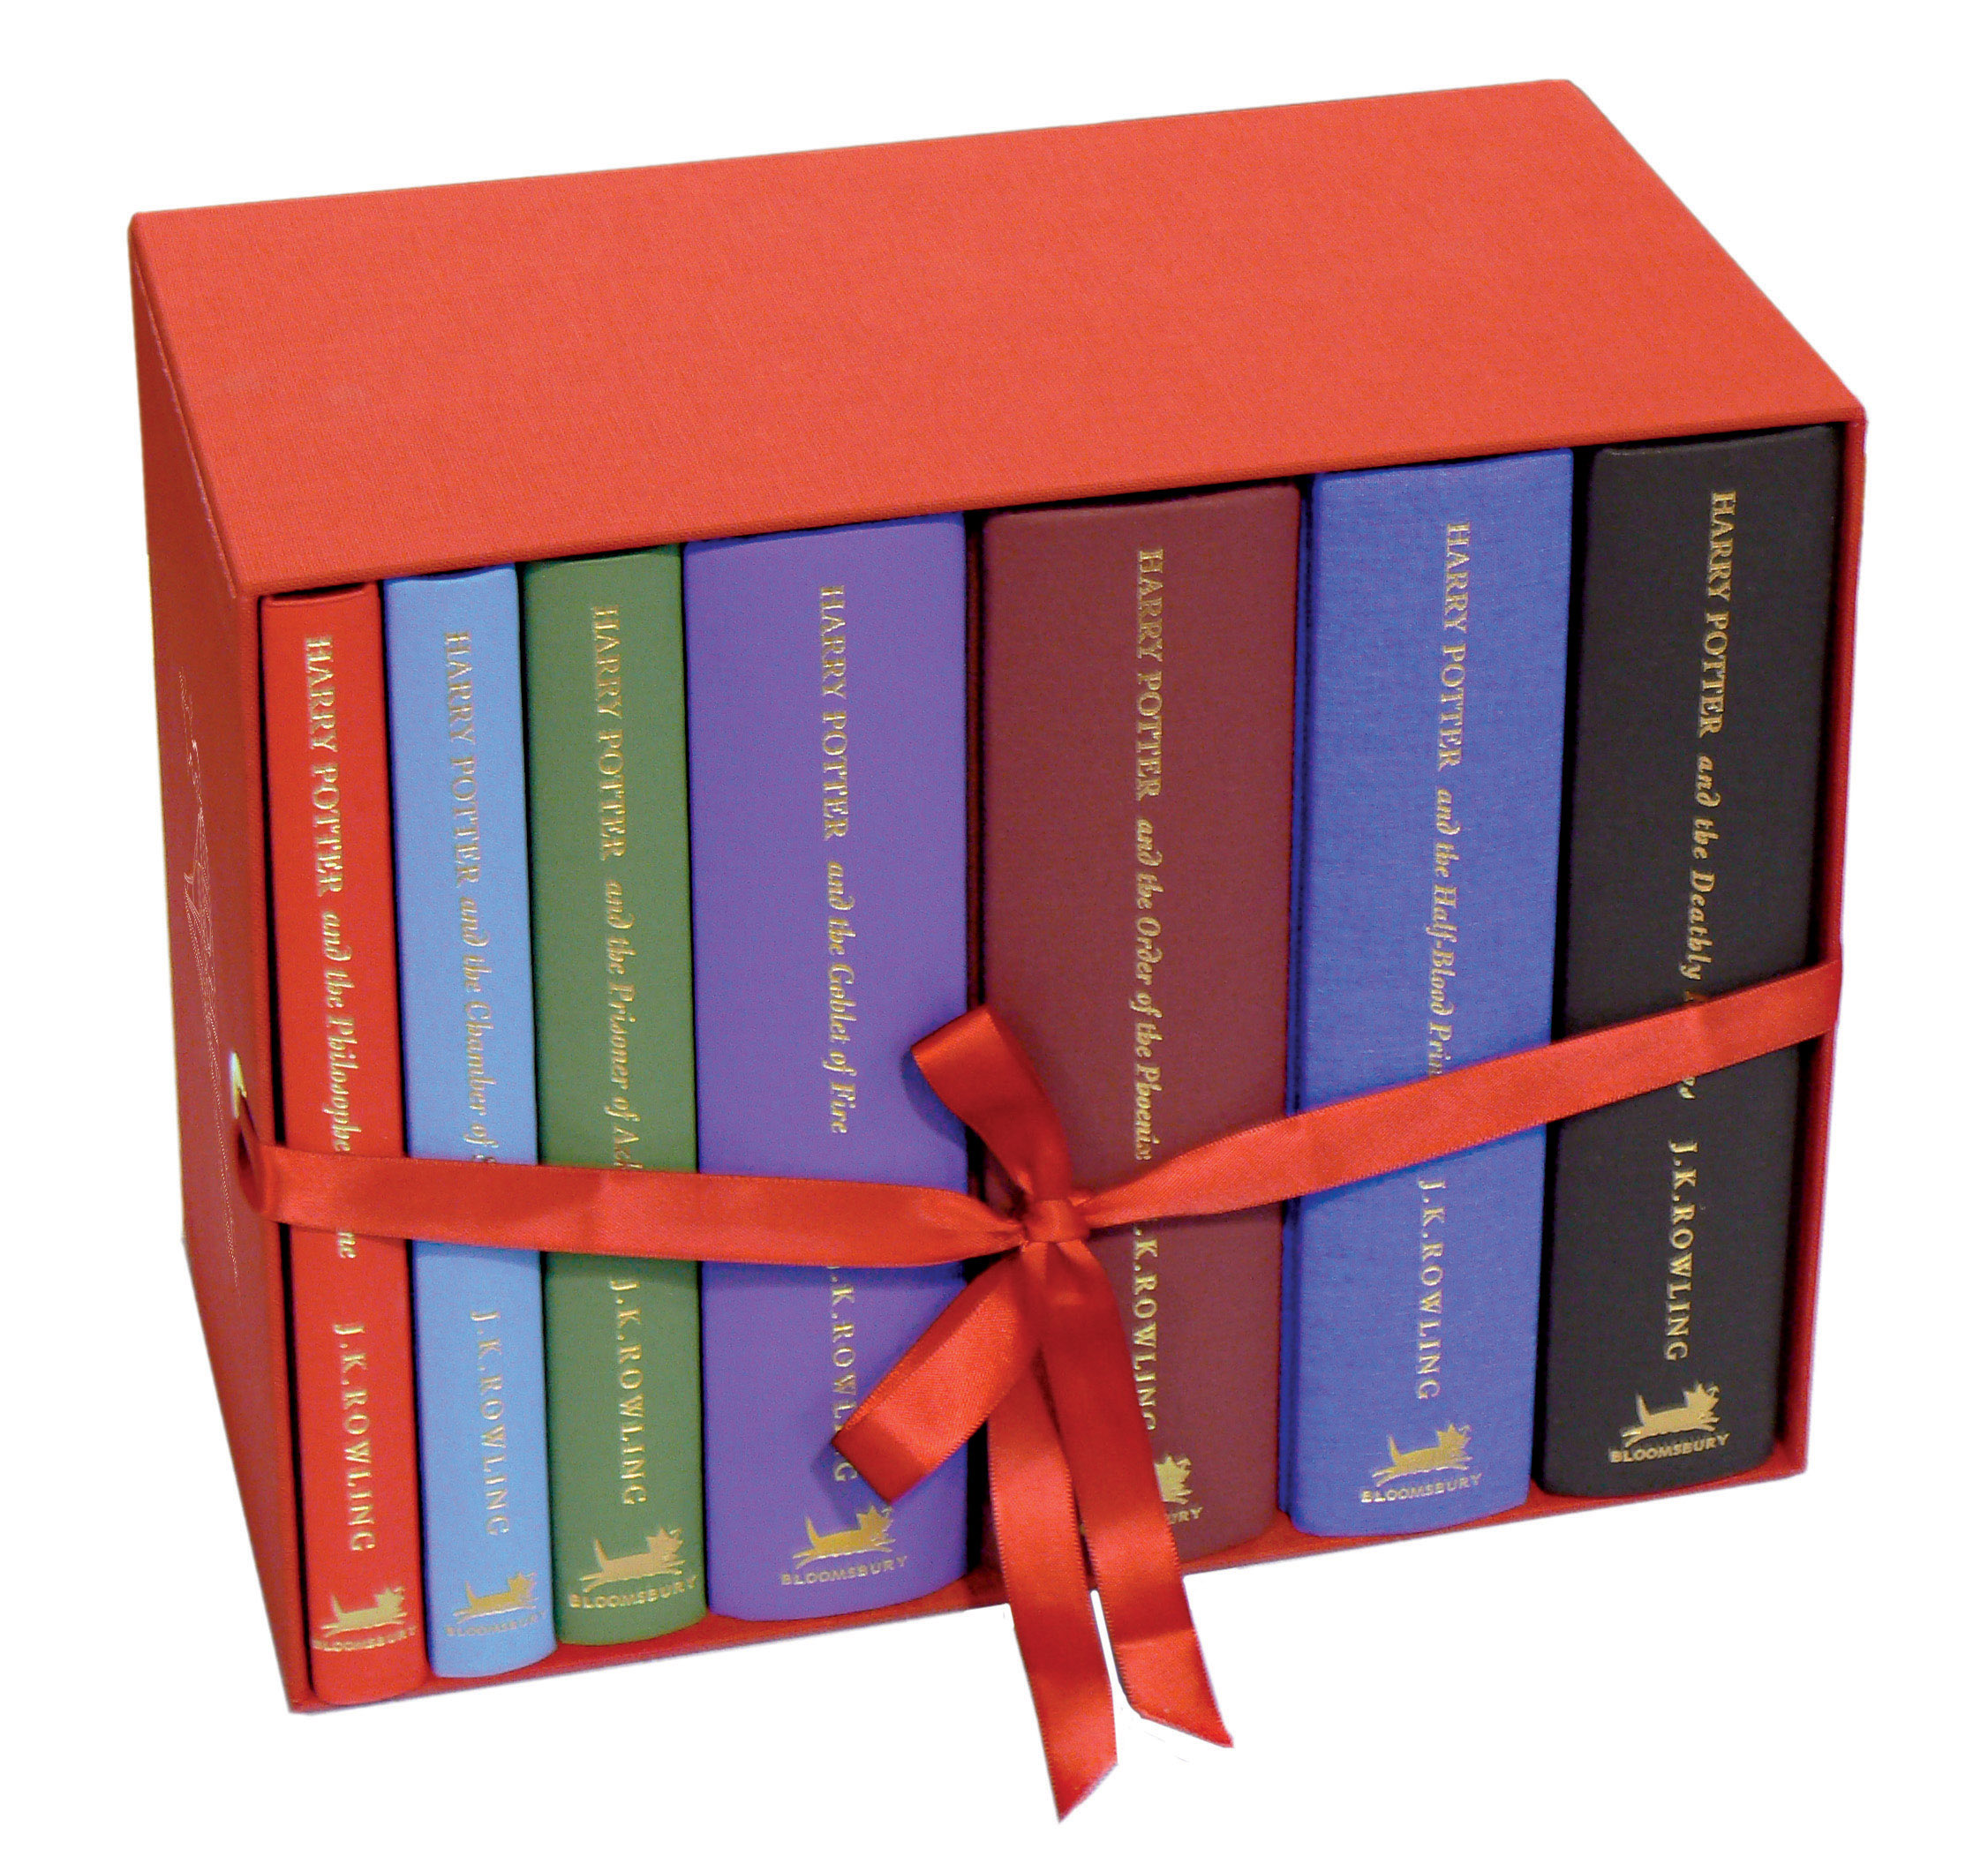 Harry Potter Special Edition Boxed Set x 7